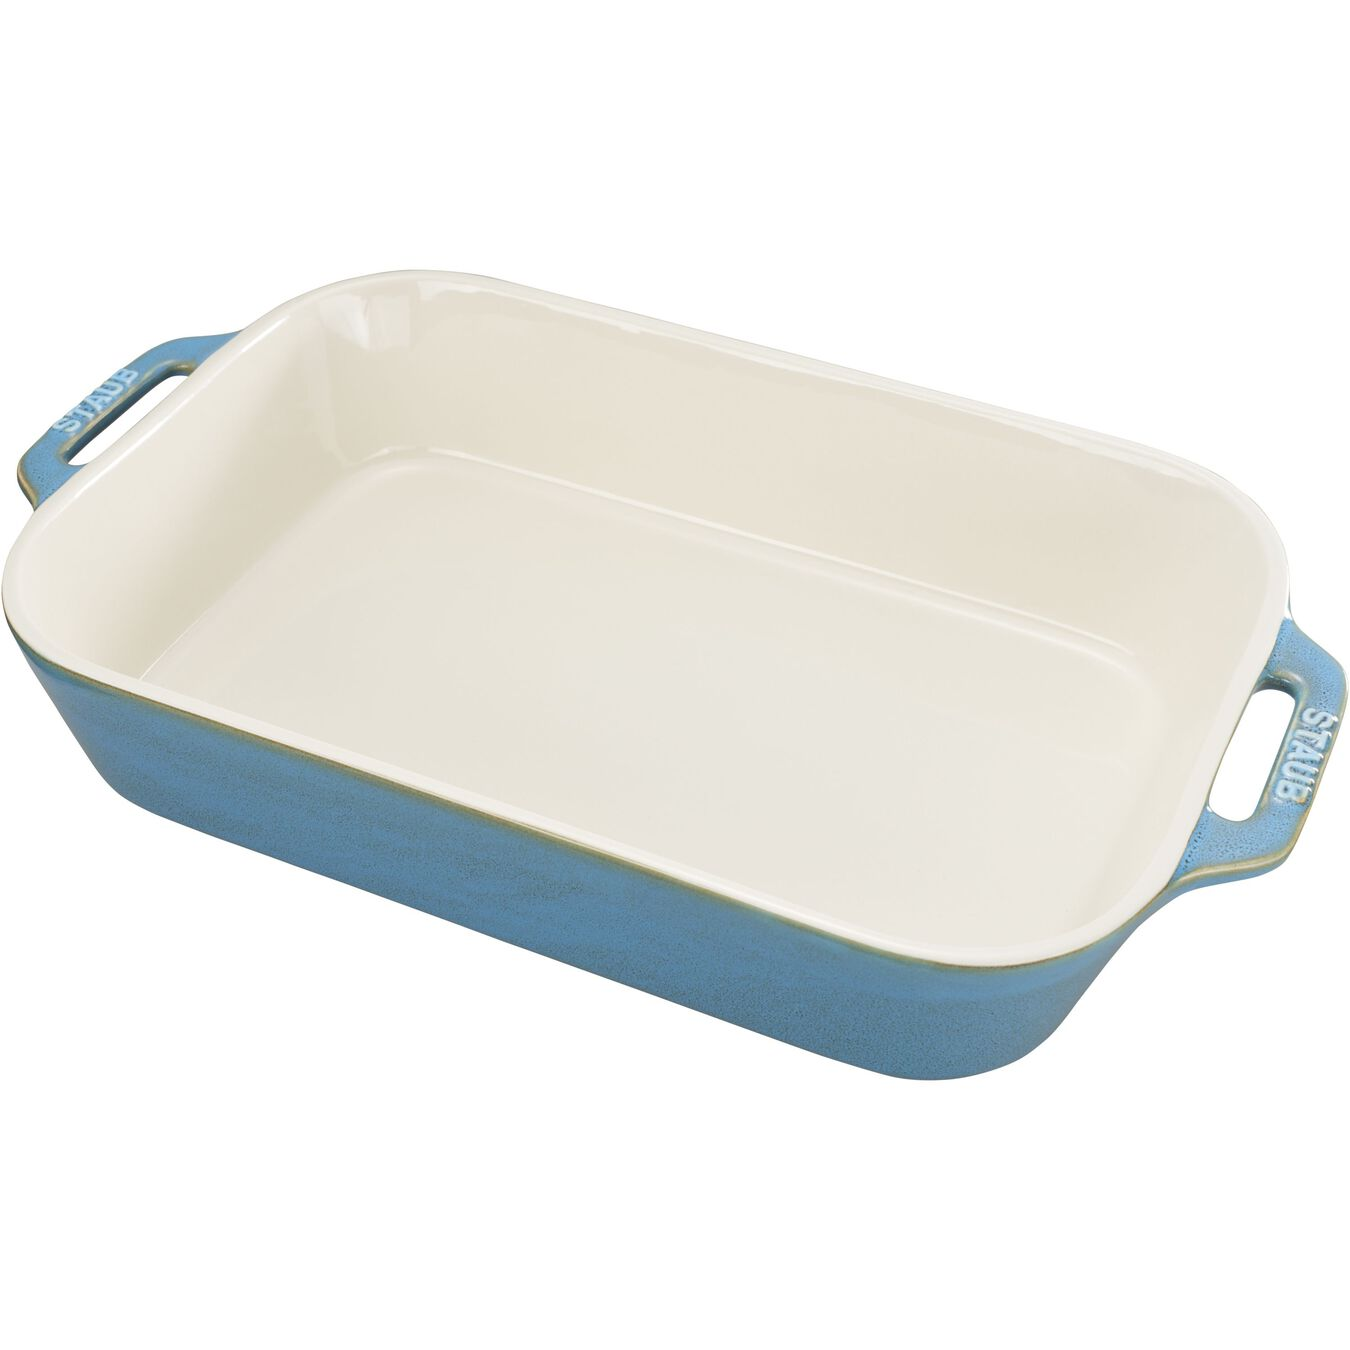 13-inch x 9-inch Rectangular Baking Dish - Rustic Turquoise  ,,large 1